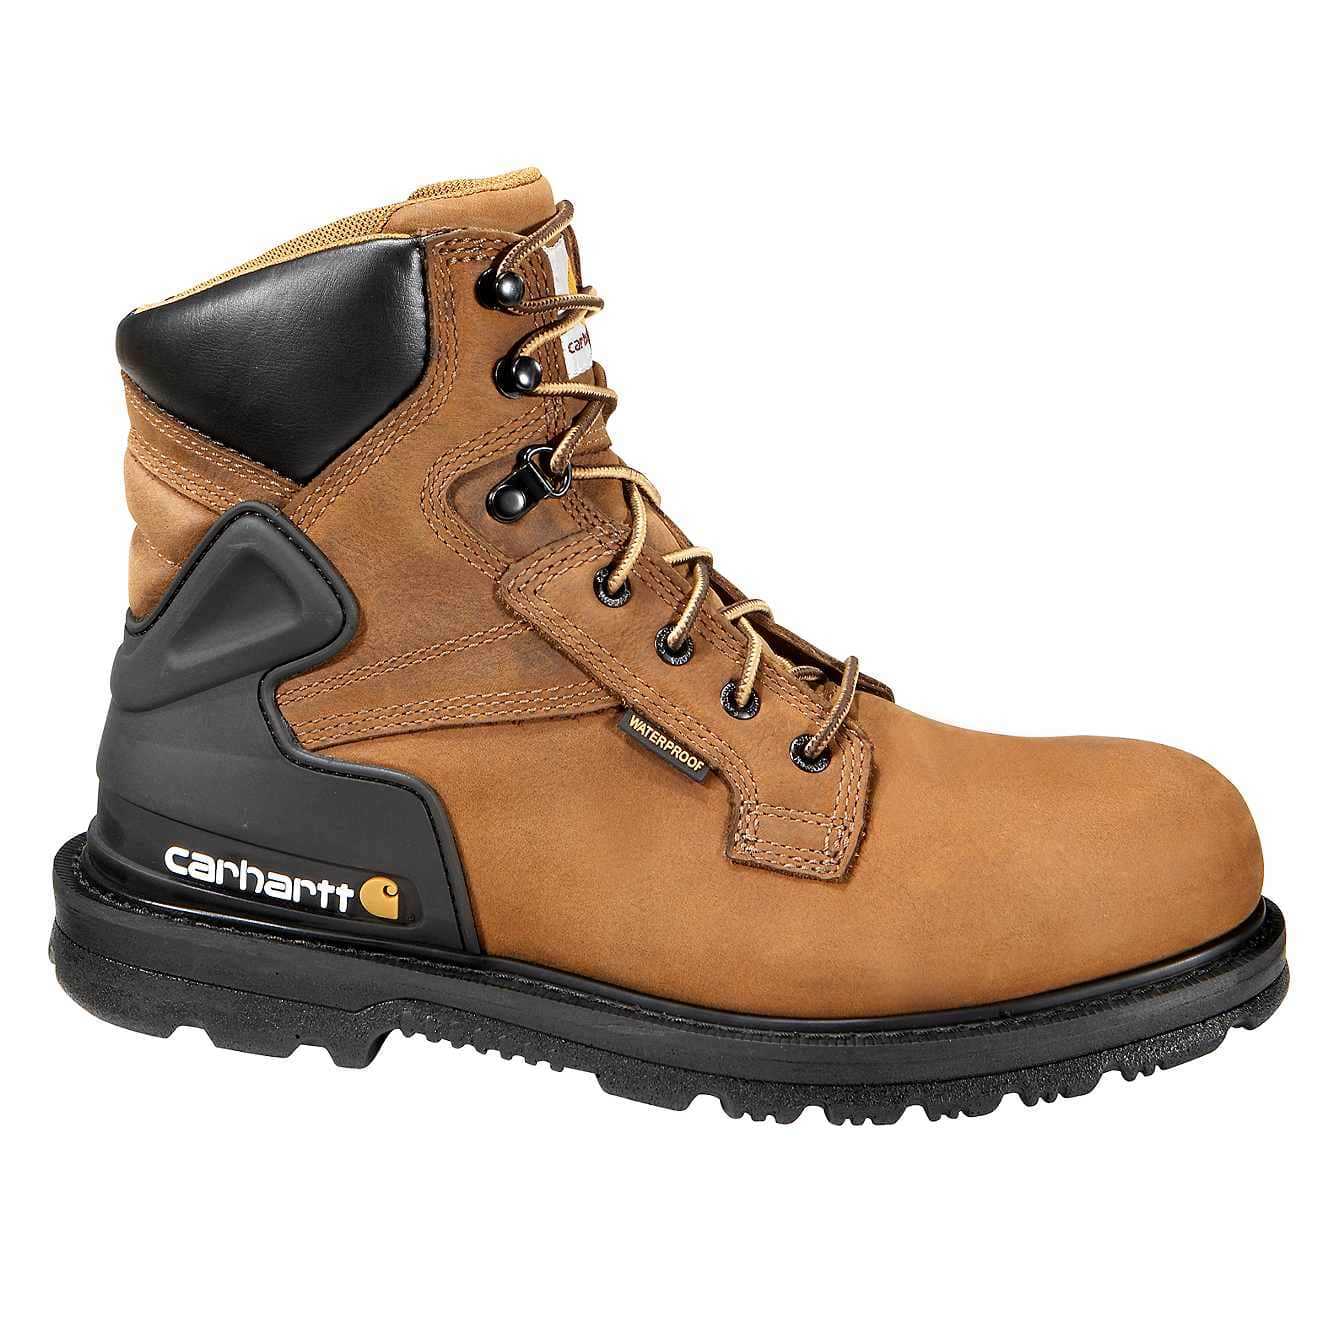 "Men's Carhartt 6"" Non-Safety Toe Work Boots, CMW6120"